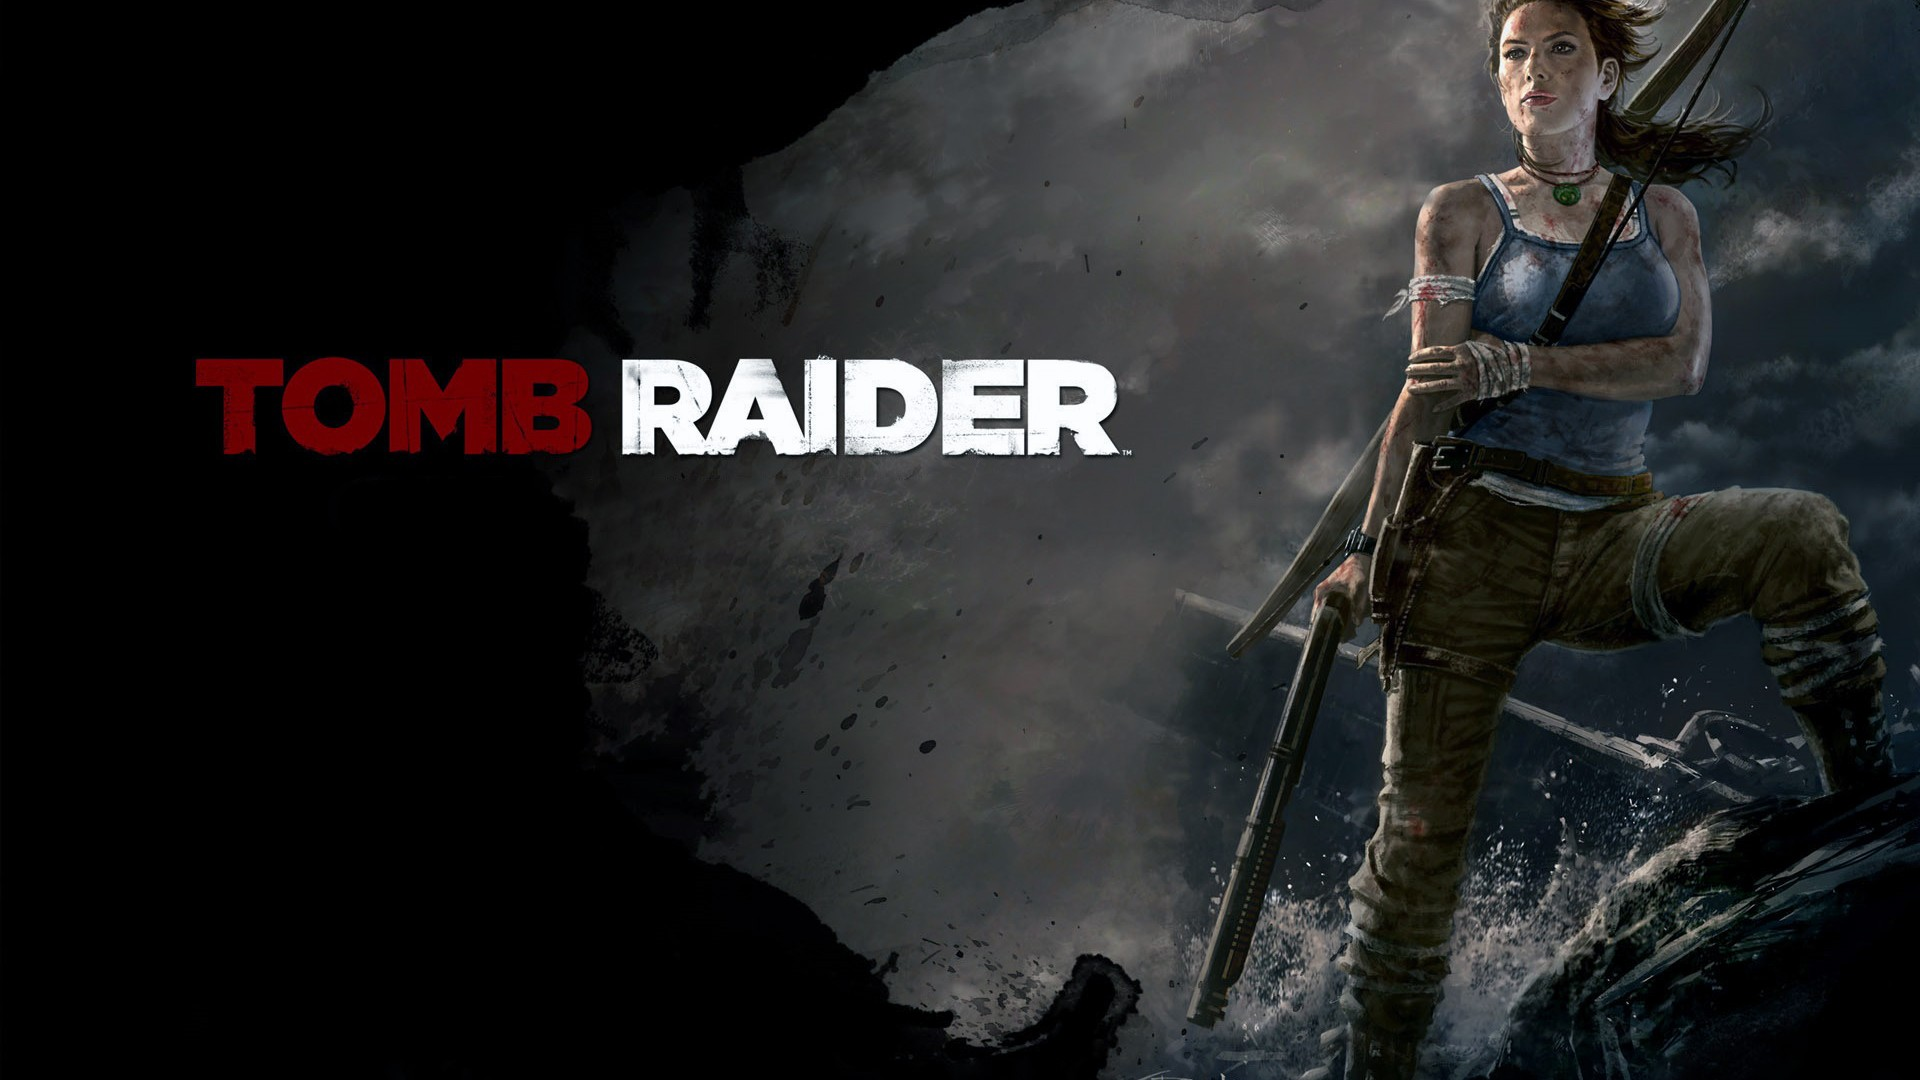 Tomb Raider Background